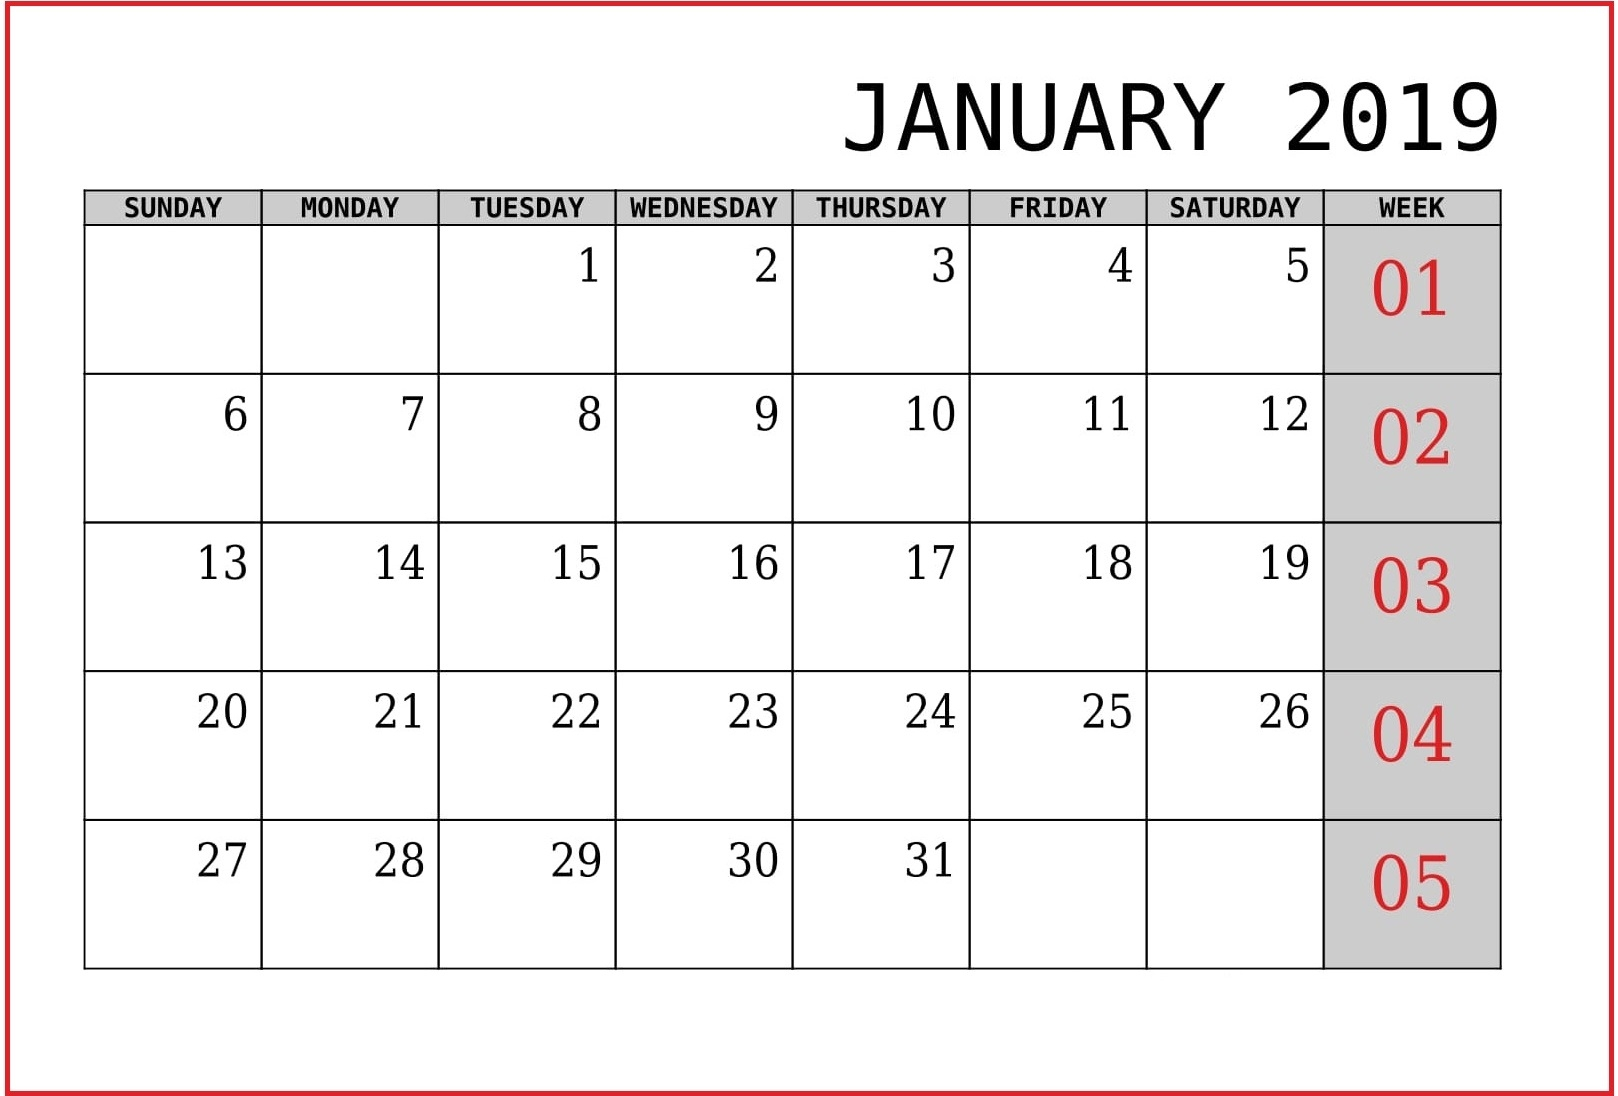 free january 2019 calendar template download february 2019 calendar::January 2019 Calendar Printable Template